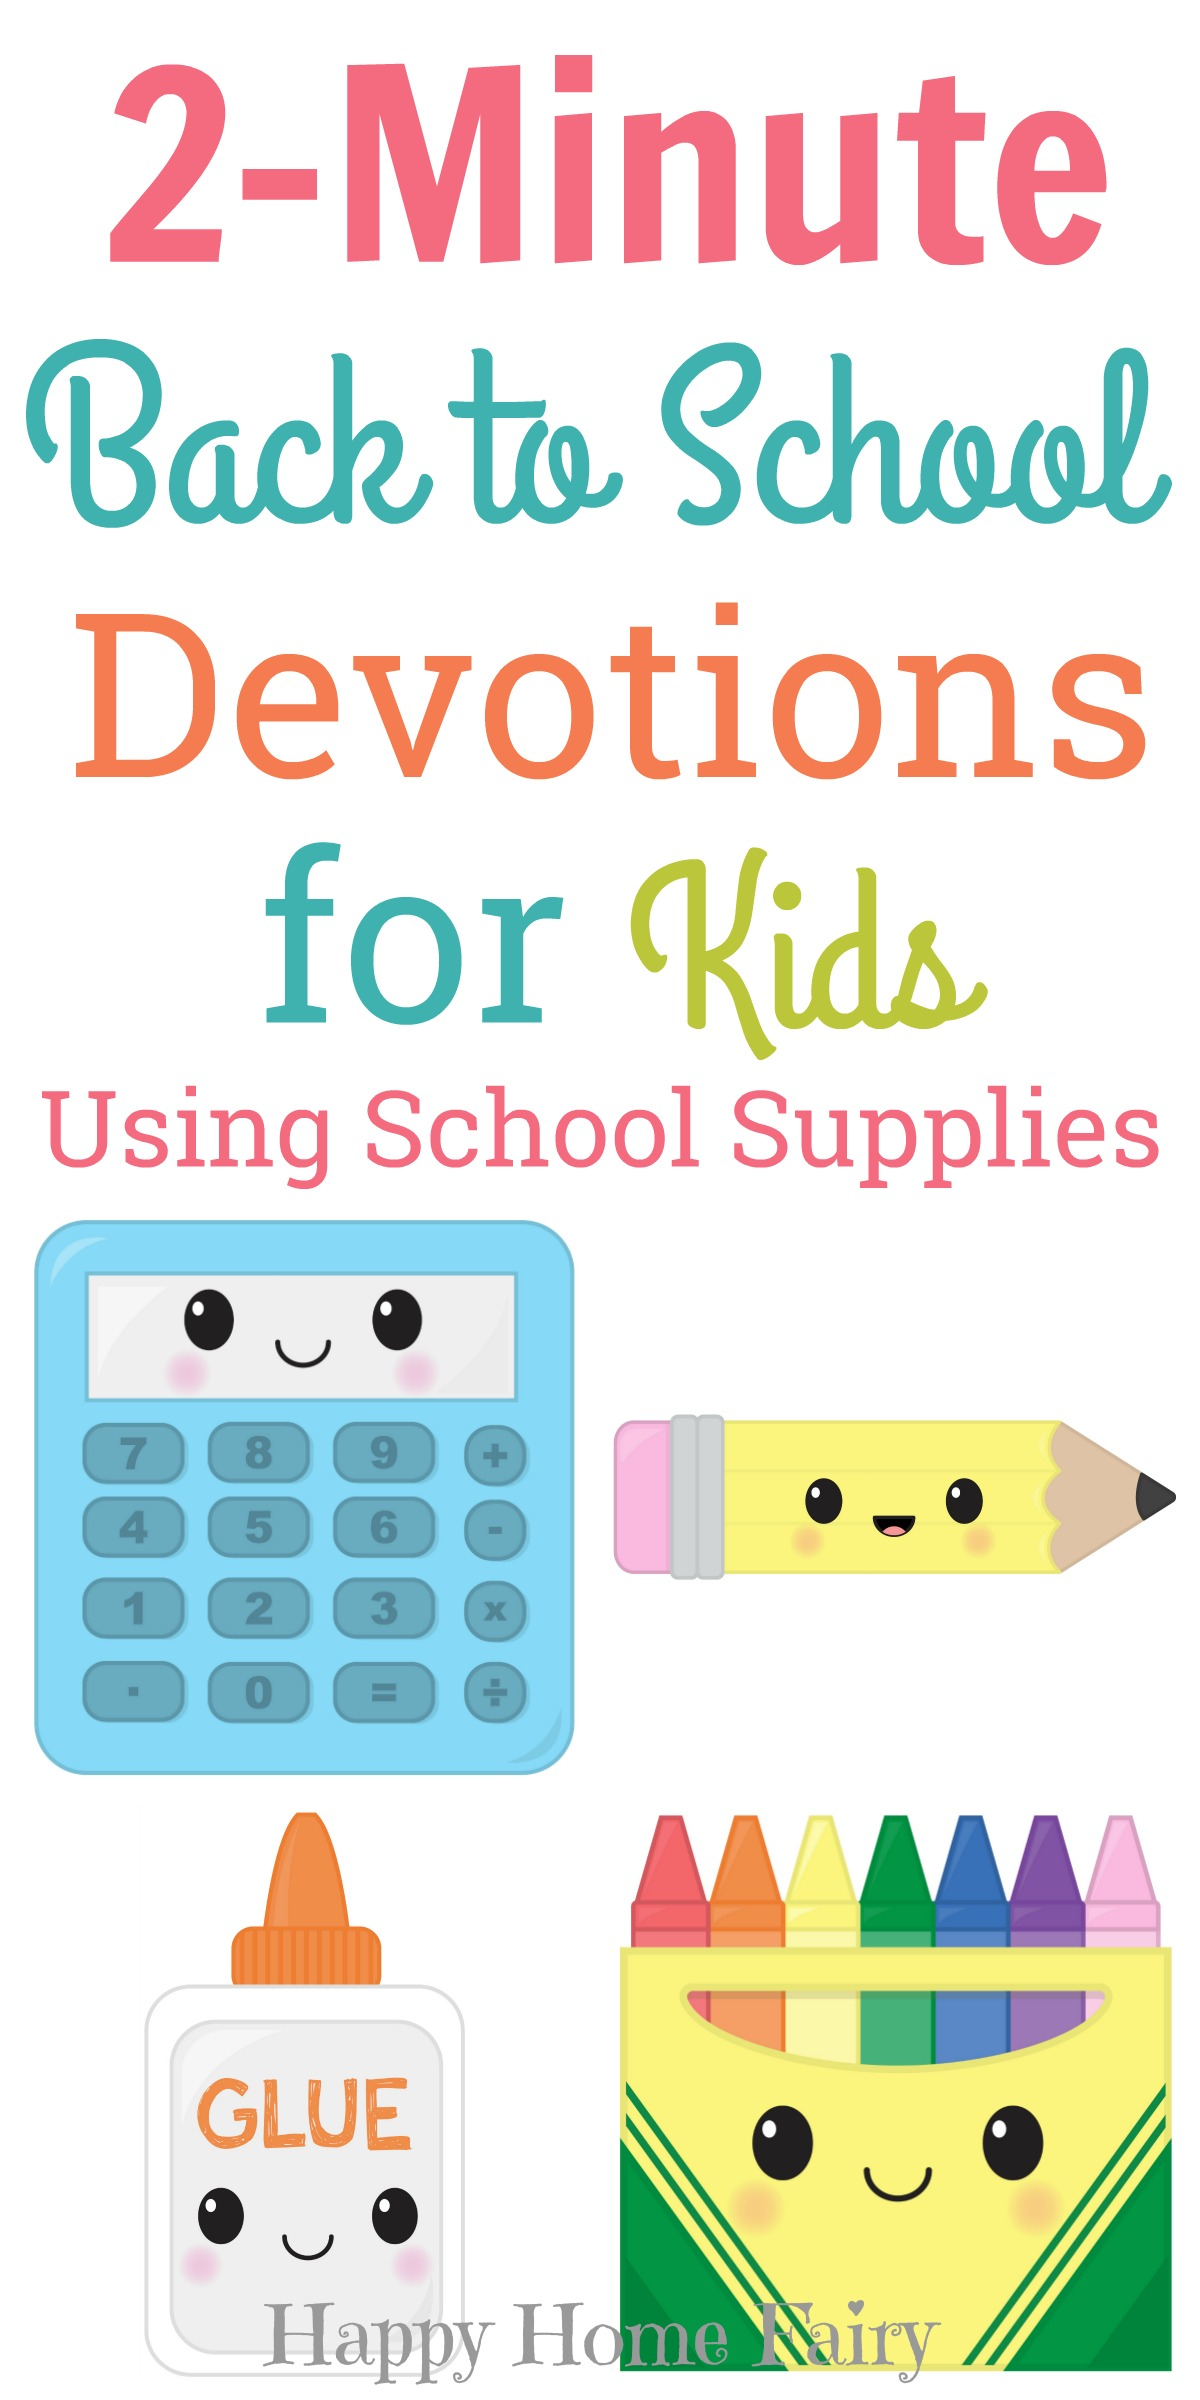 photo regarding Printable Bible Devotions for Kids titled 2-Instant Back again in the direction of Higher education Devotions for Little ones - Joyful Household Fairy